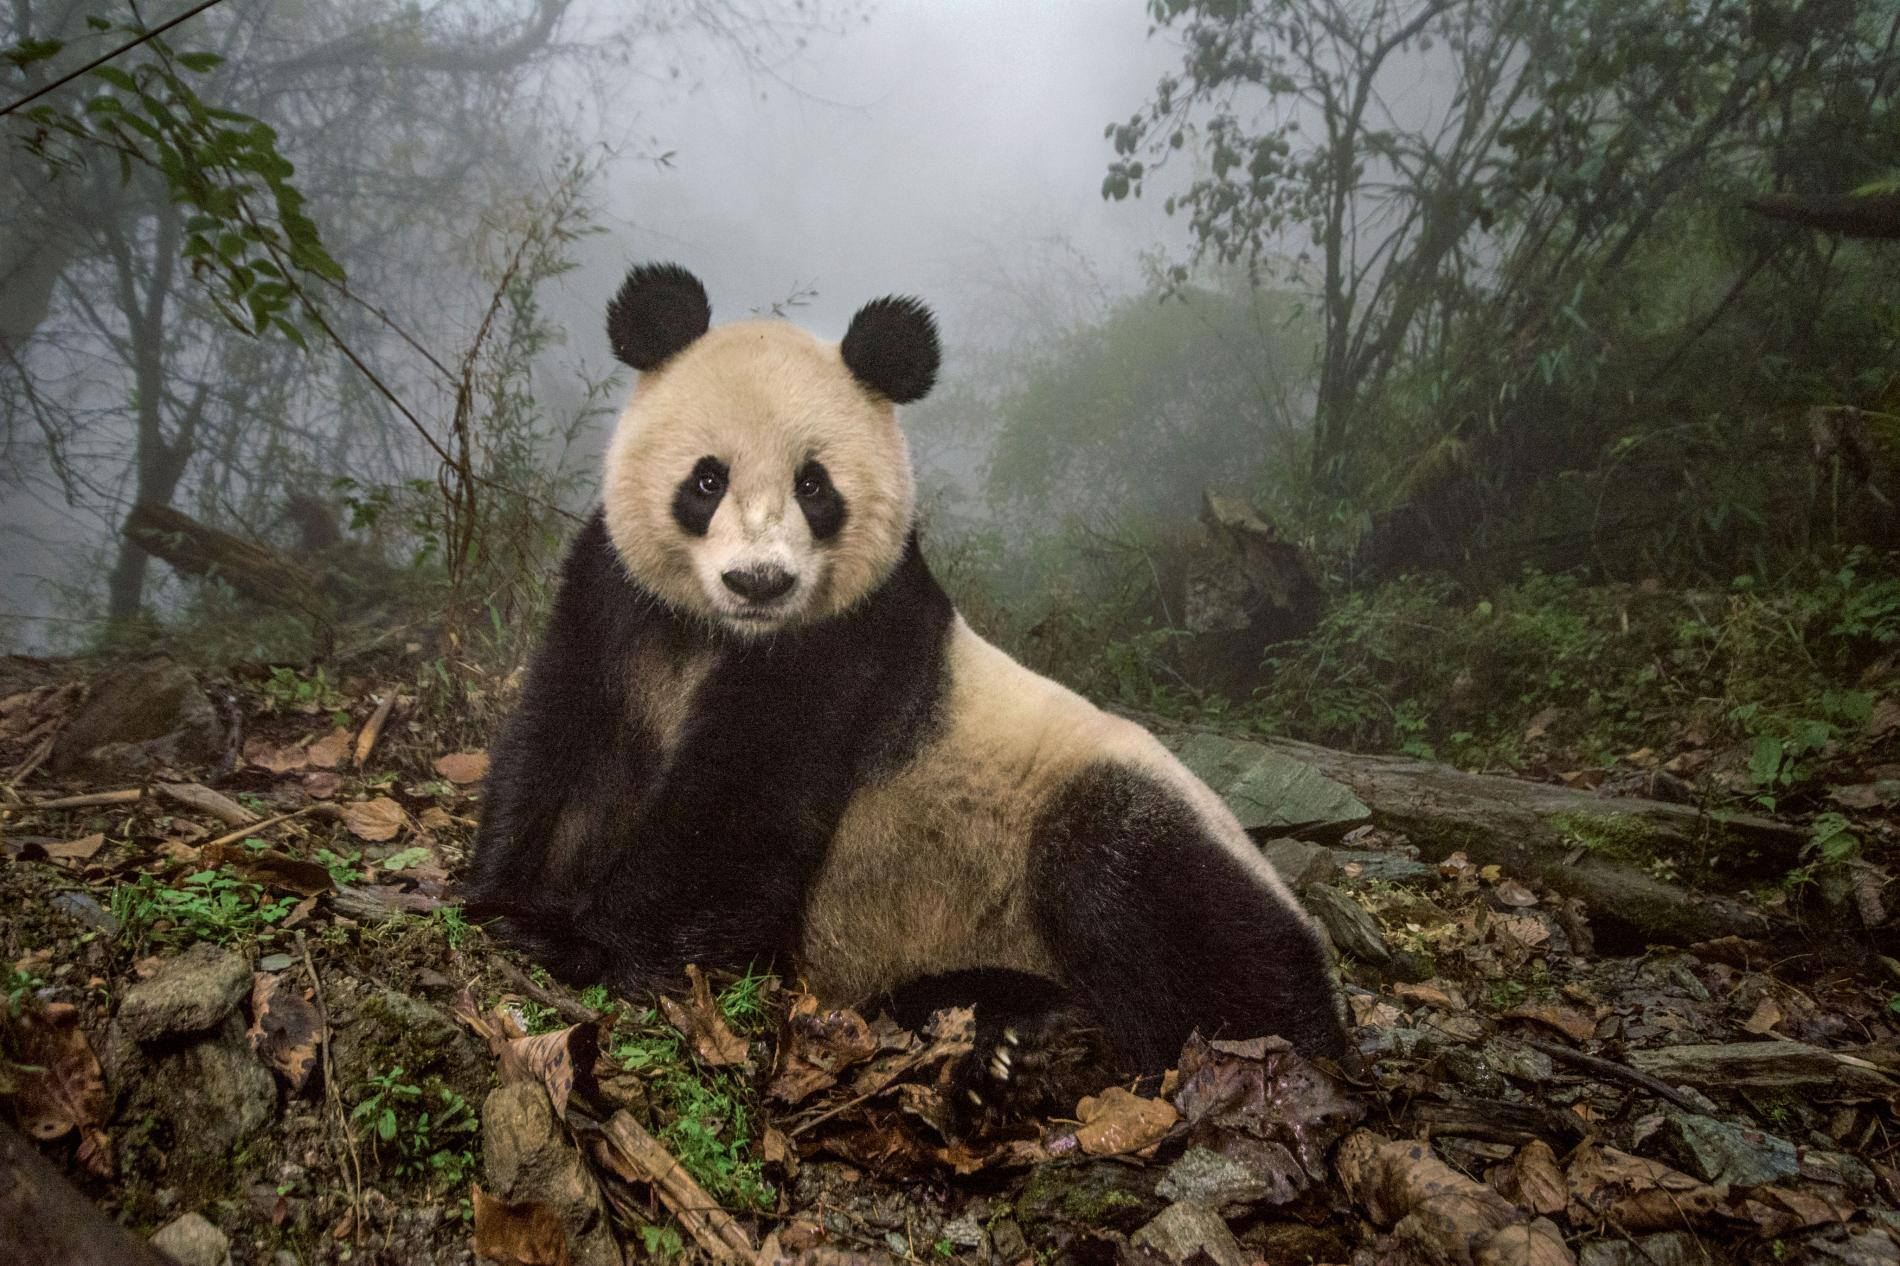 Rewilding Pandas in China feature